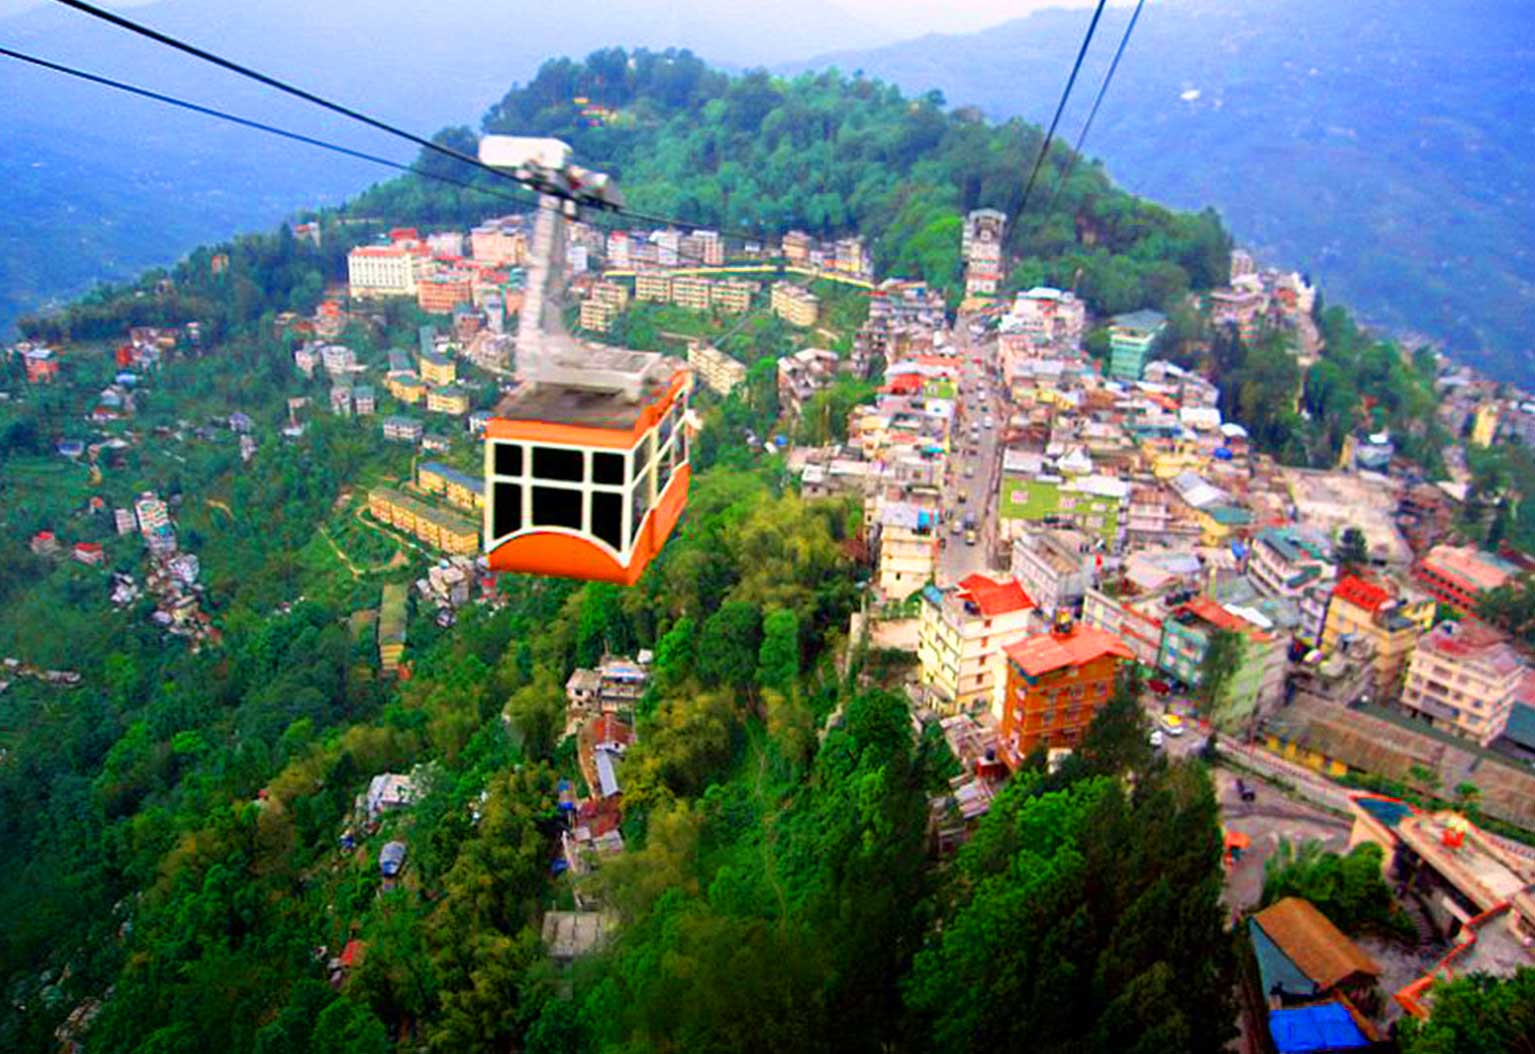 mussoorie rope way - place to visit for summer vacations in india with family